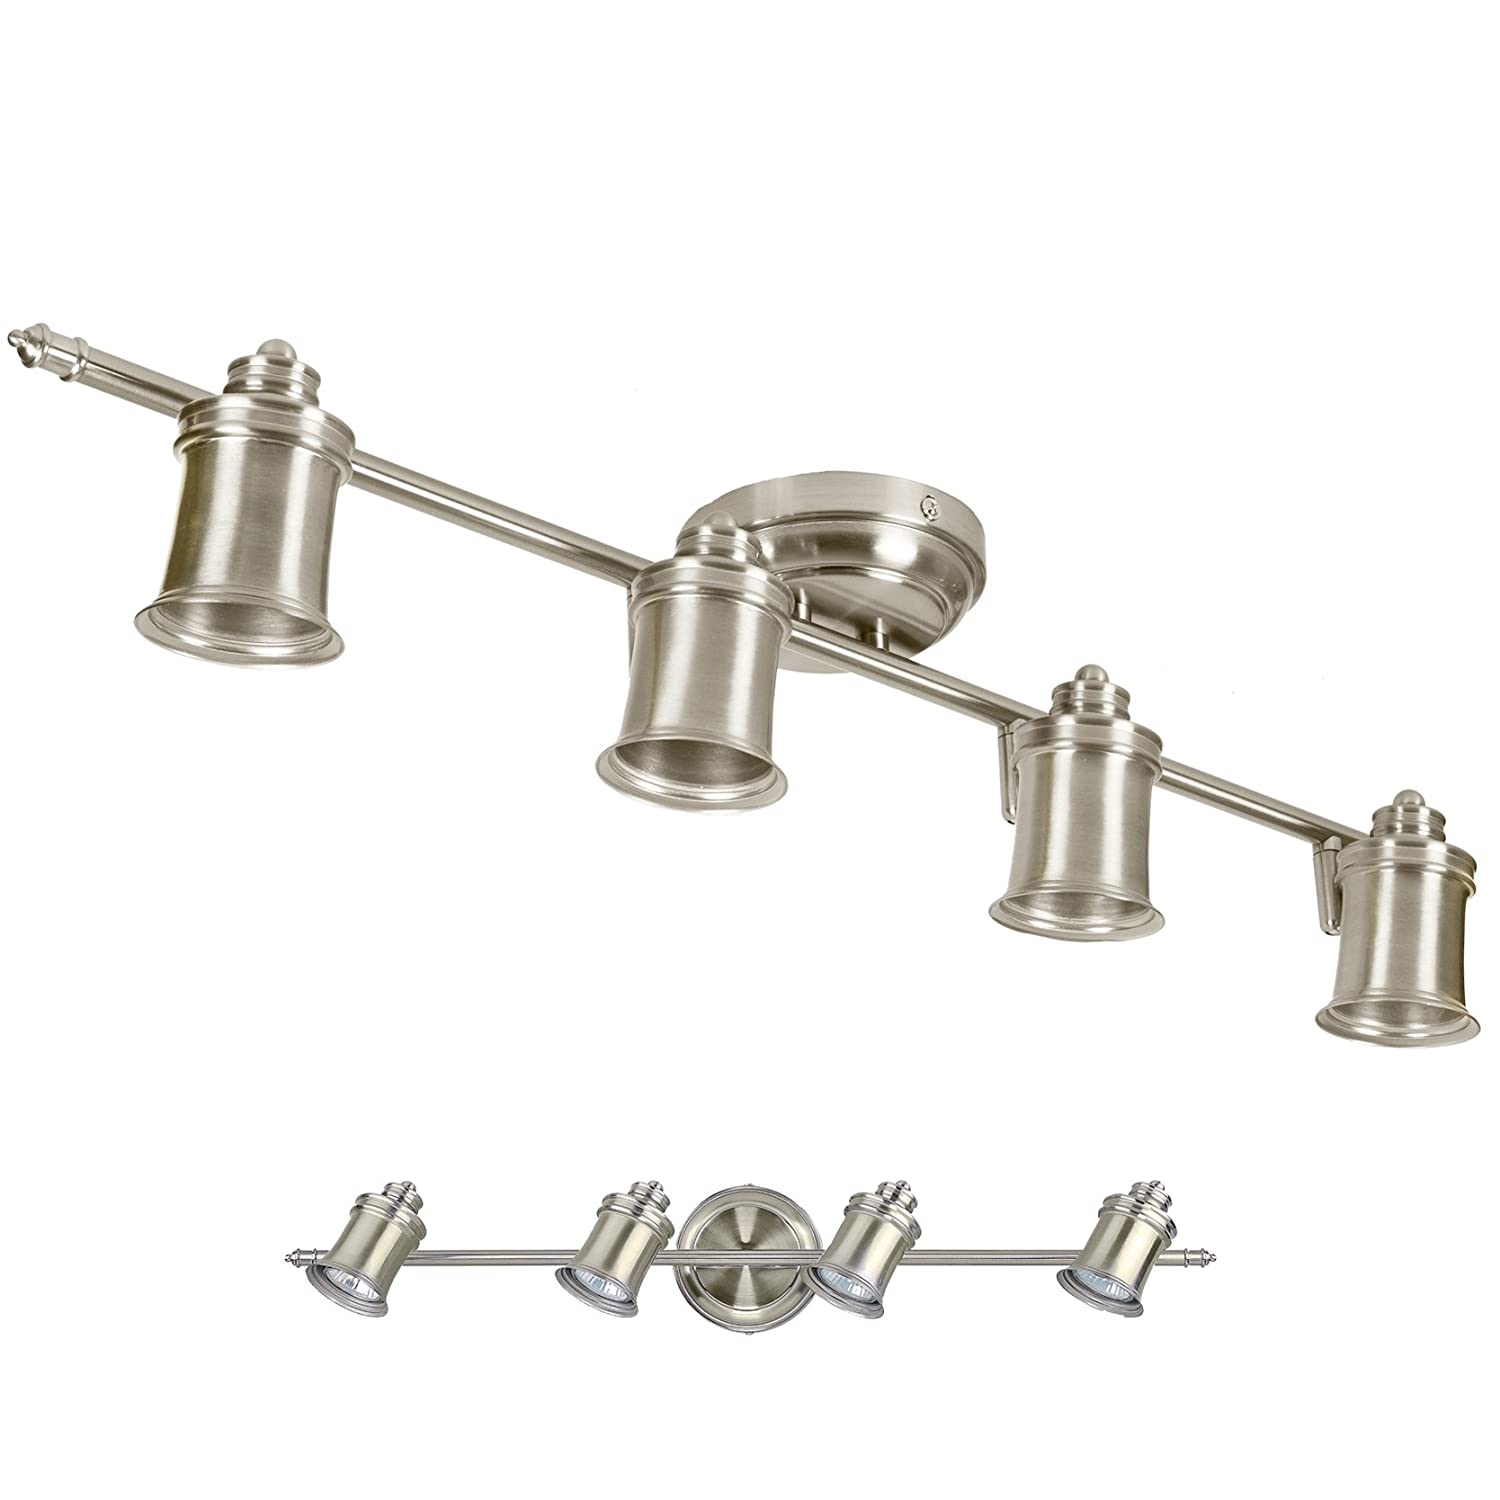 Brushed Nickel Light Track Lighting Ceiling Or Wall Adjustable - Kitchen ceiling track light fixtures